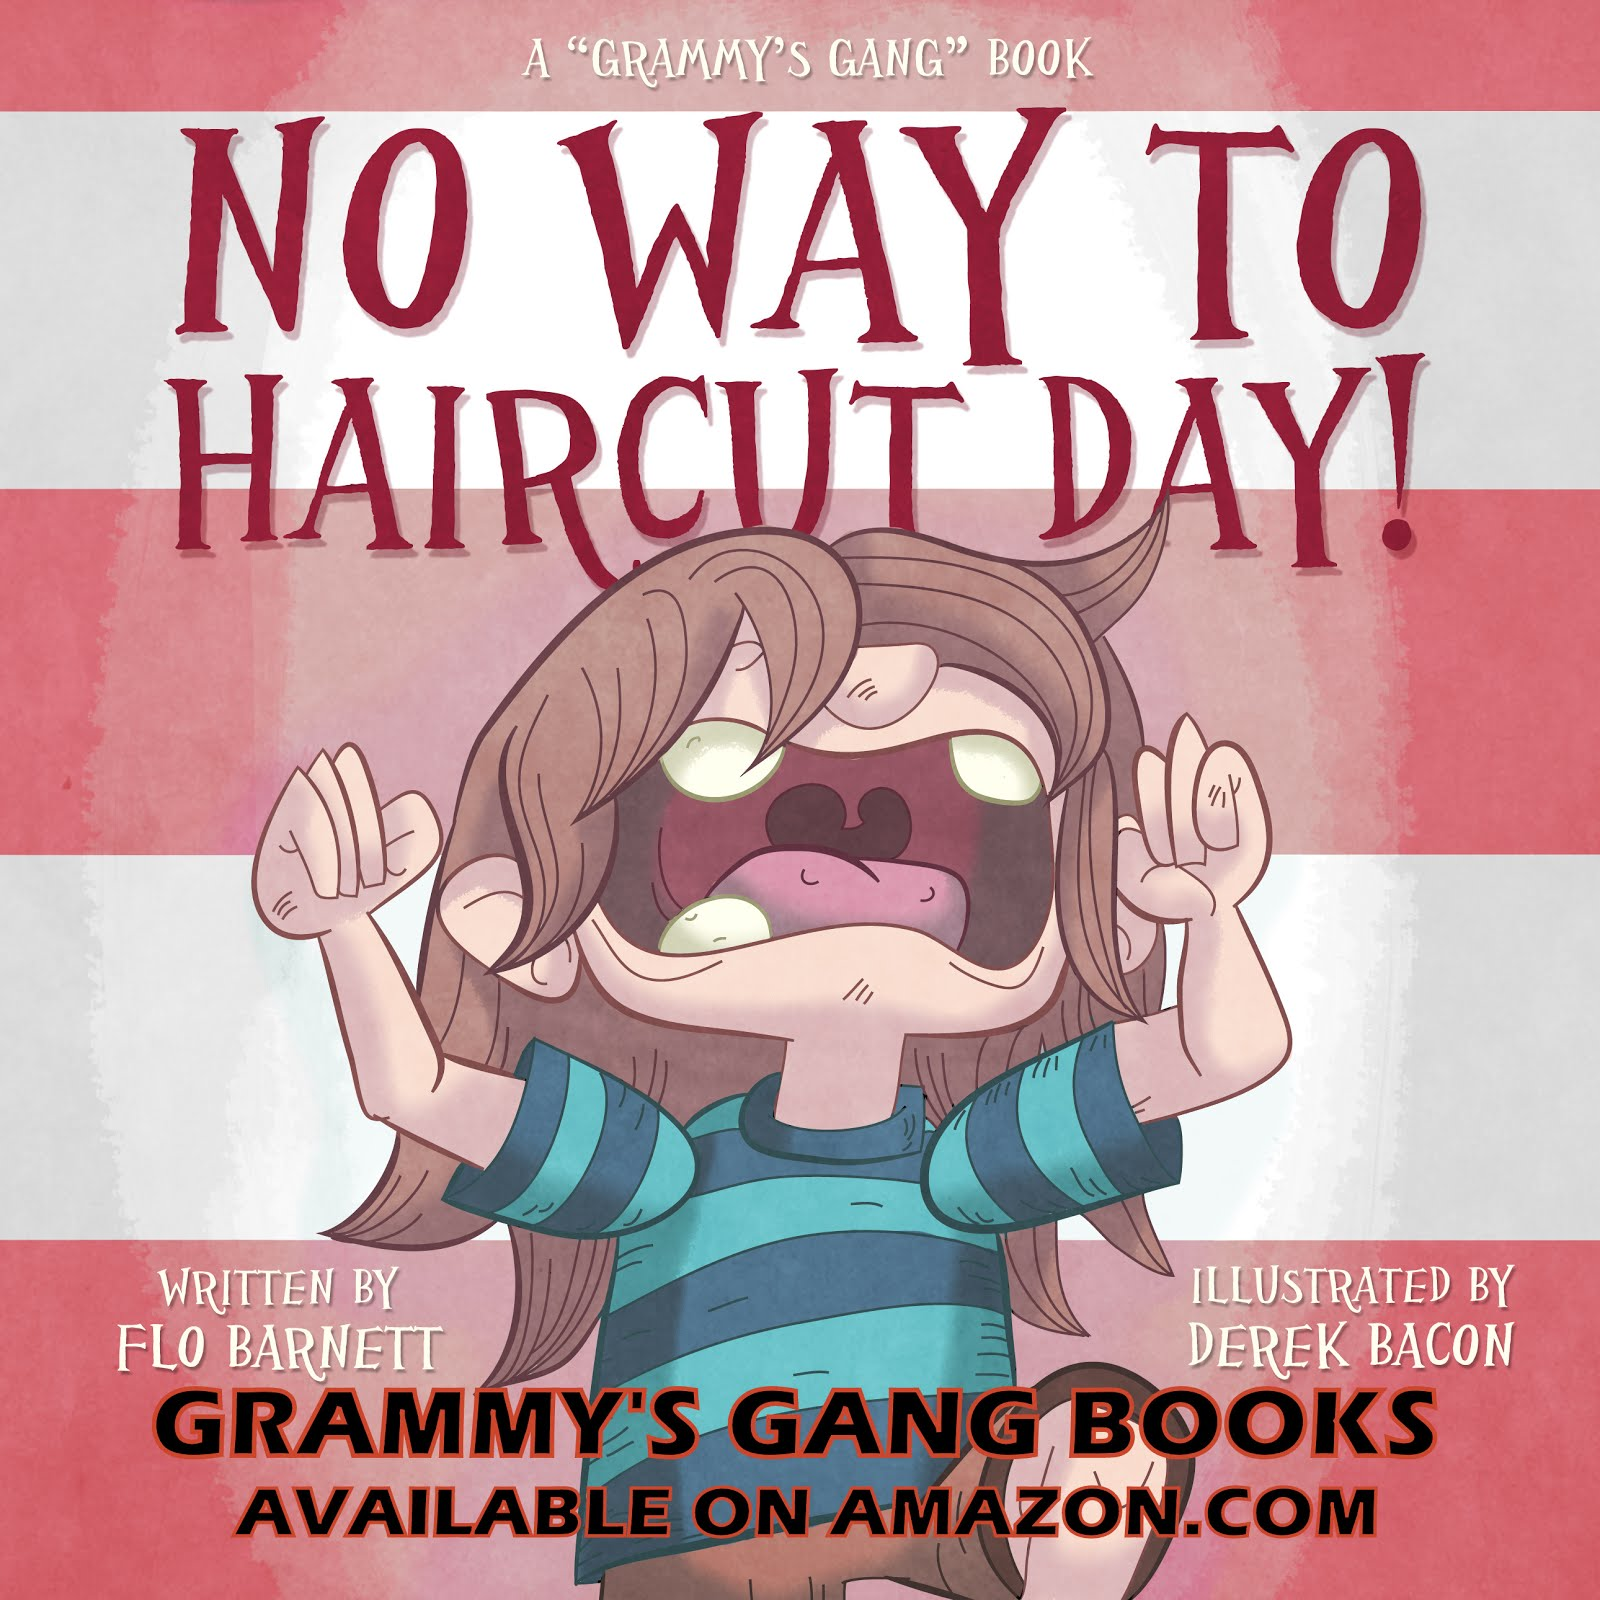 No Way To Haircut Day!